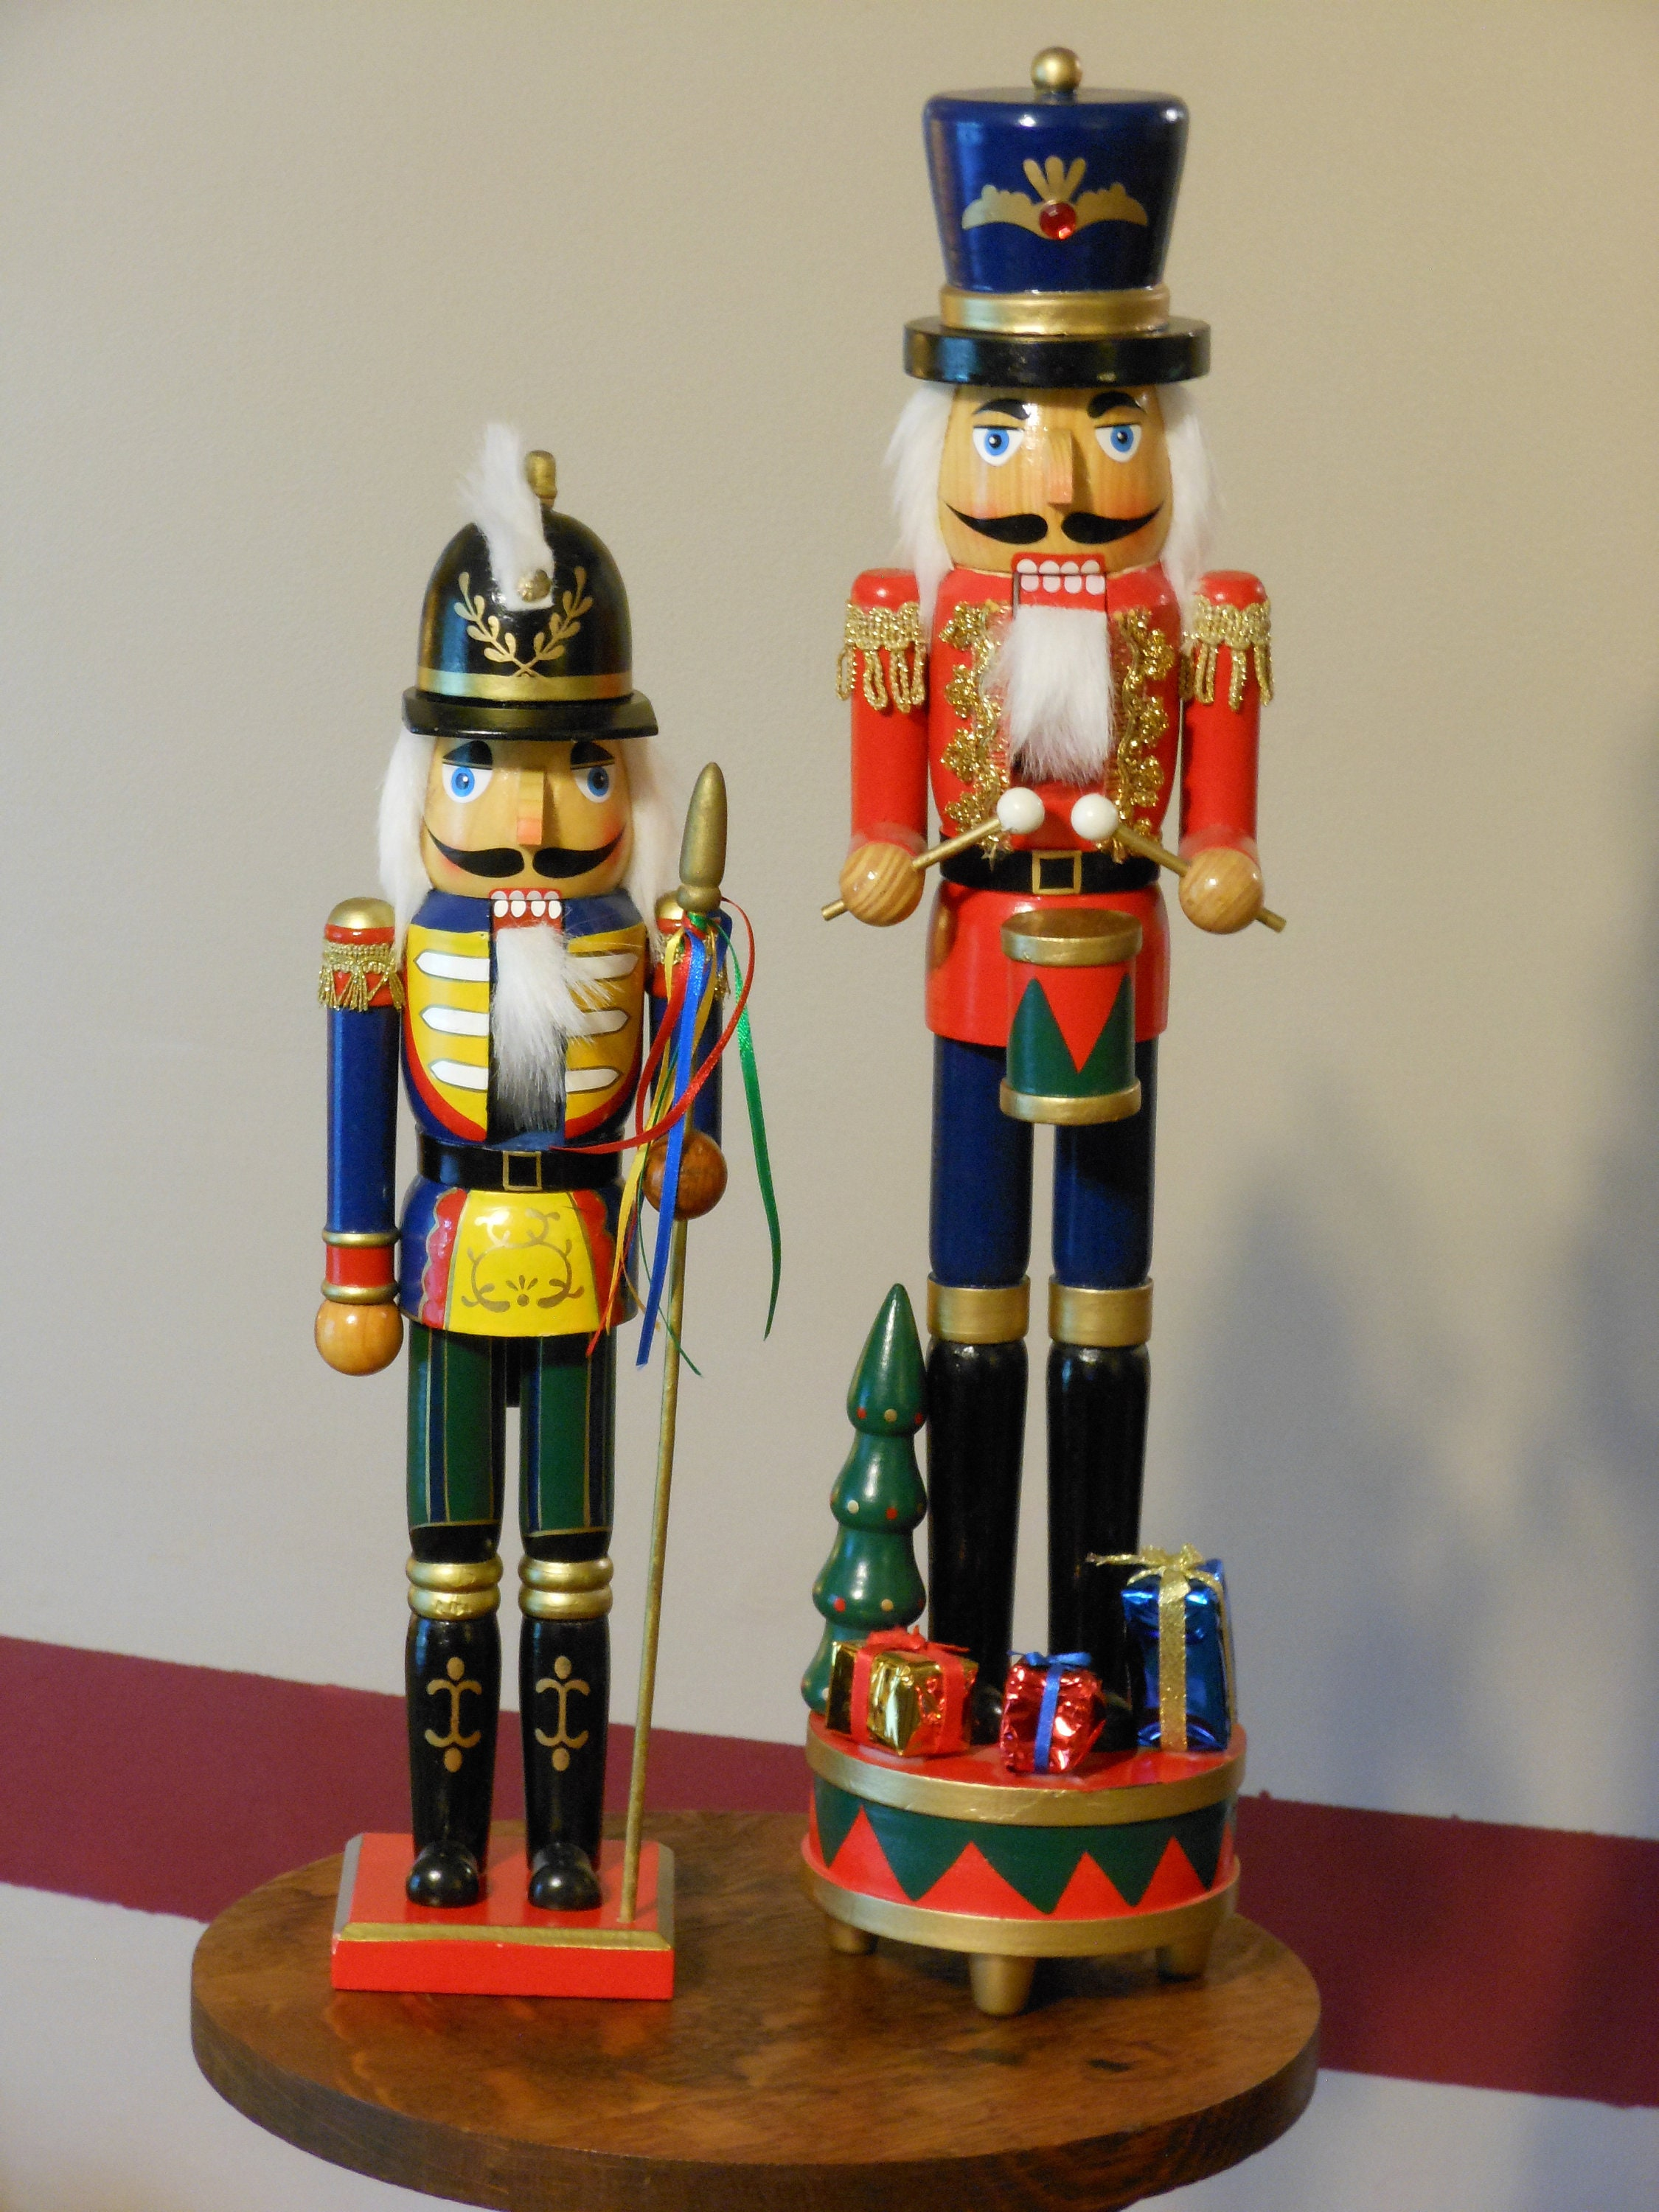 Two Christmas Decor Wooden Nutcrackers